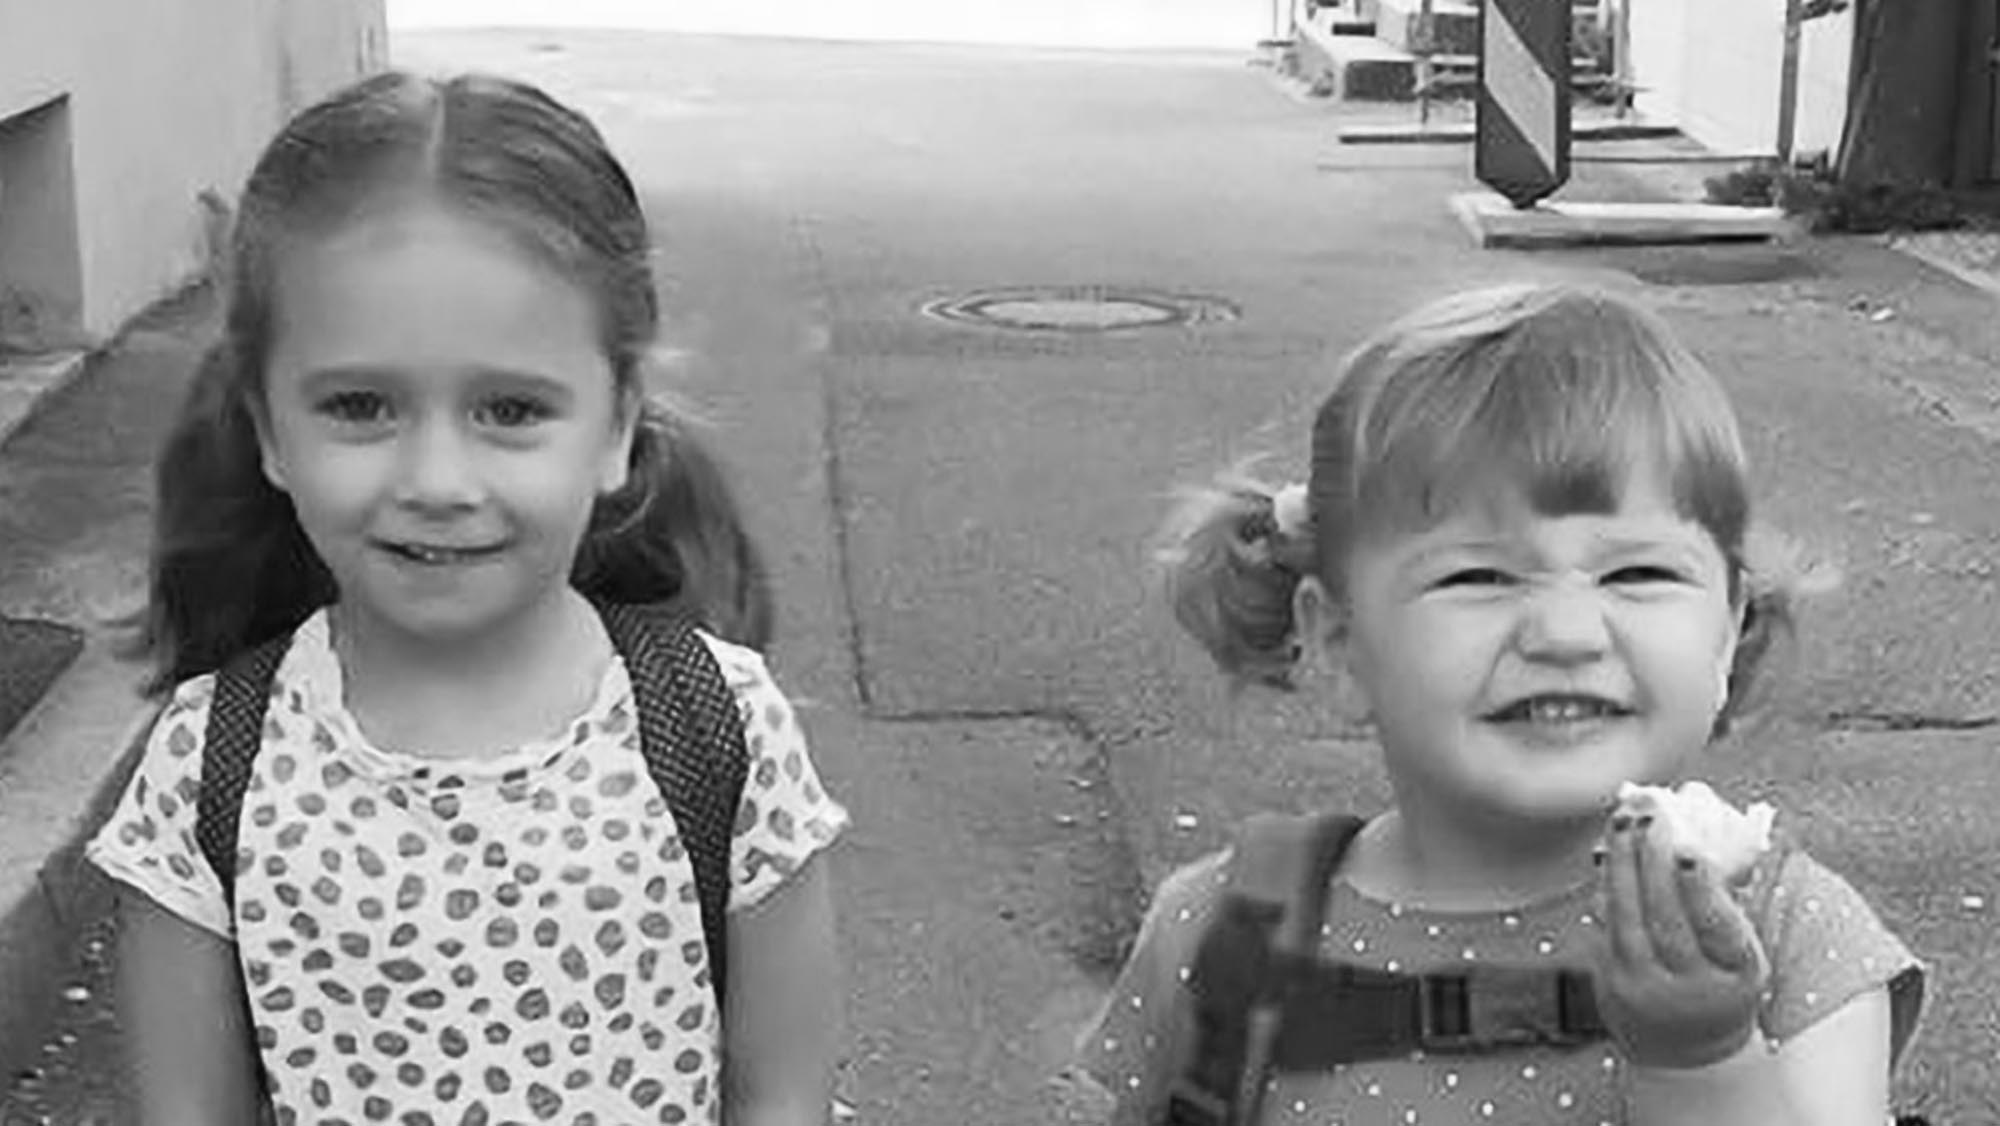 Hunt For Girl, 6, Lost In Deadly Fathers Day Outing